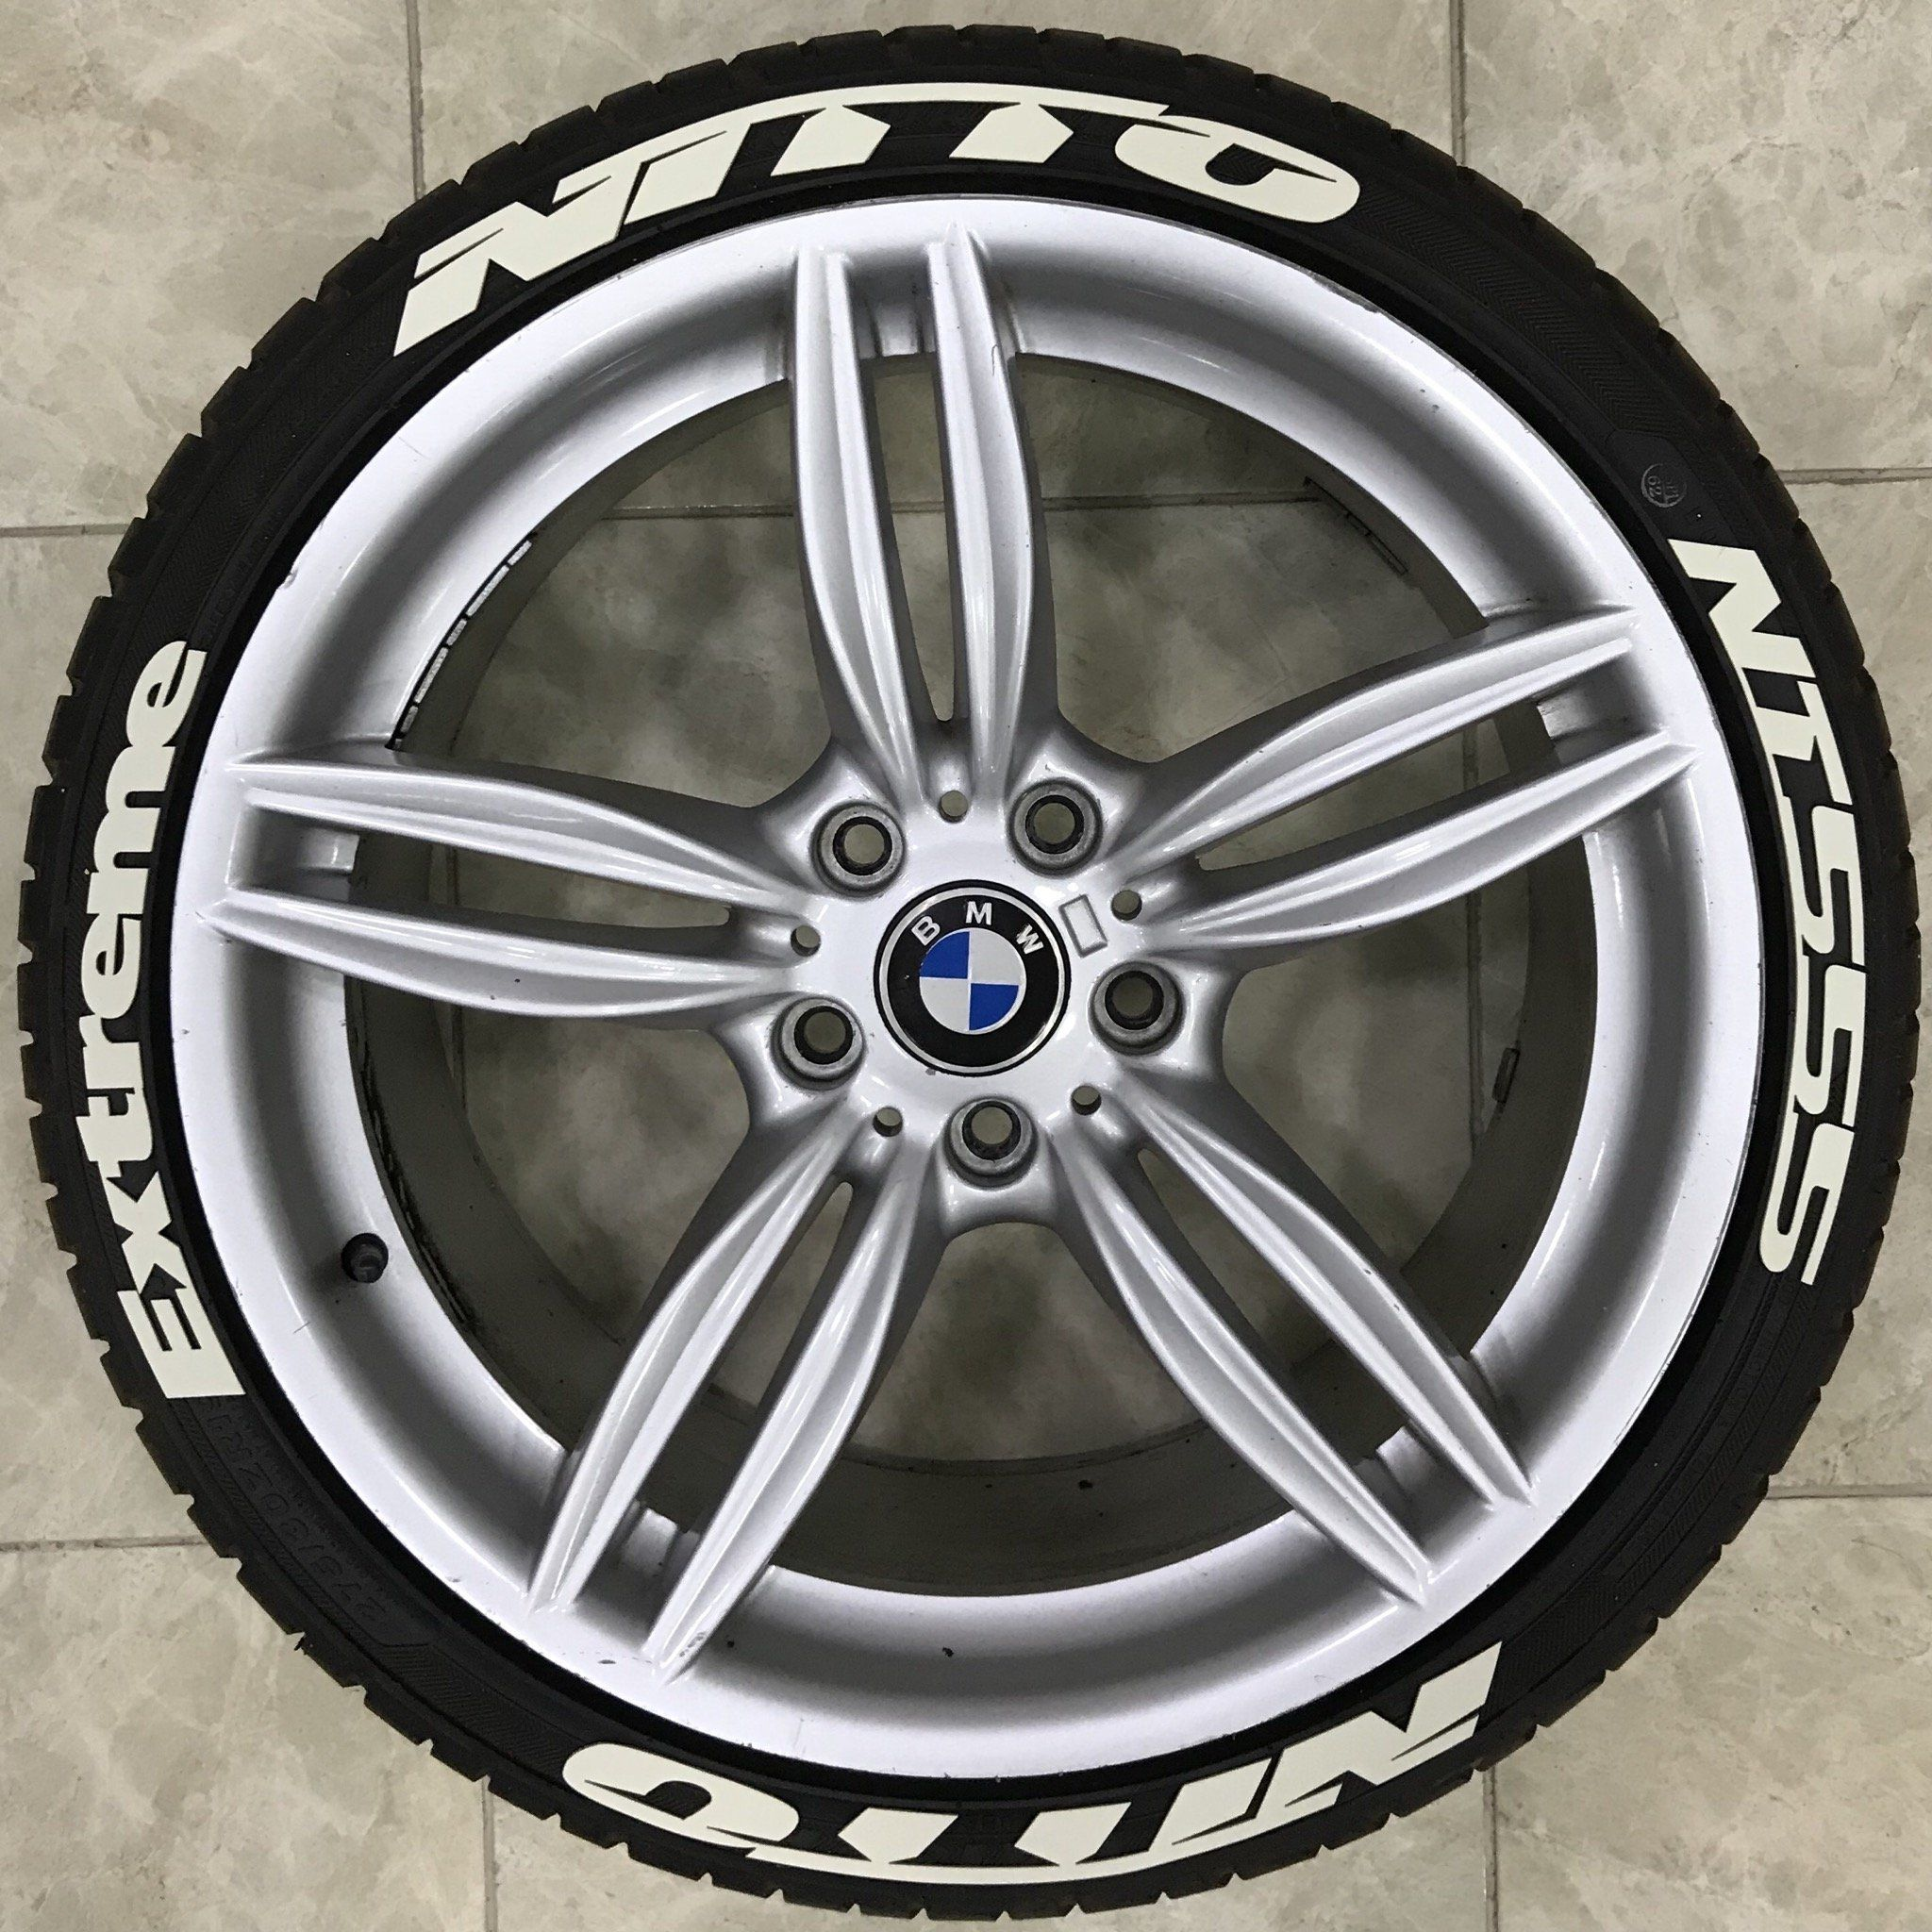 Nitto Tires With White Lettering >> 1 Nitto Nt555 Extreme Permanent Rubber Tire Letter 16 Pcs